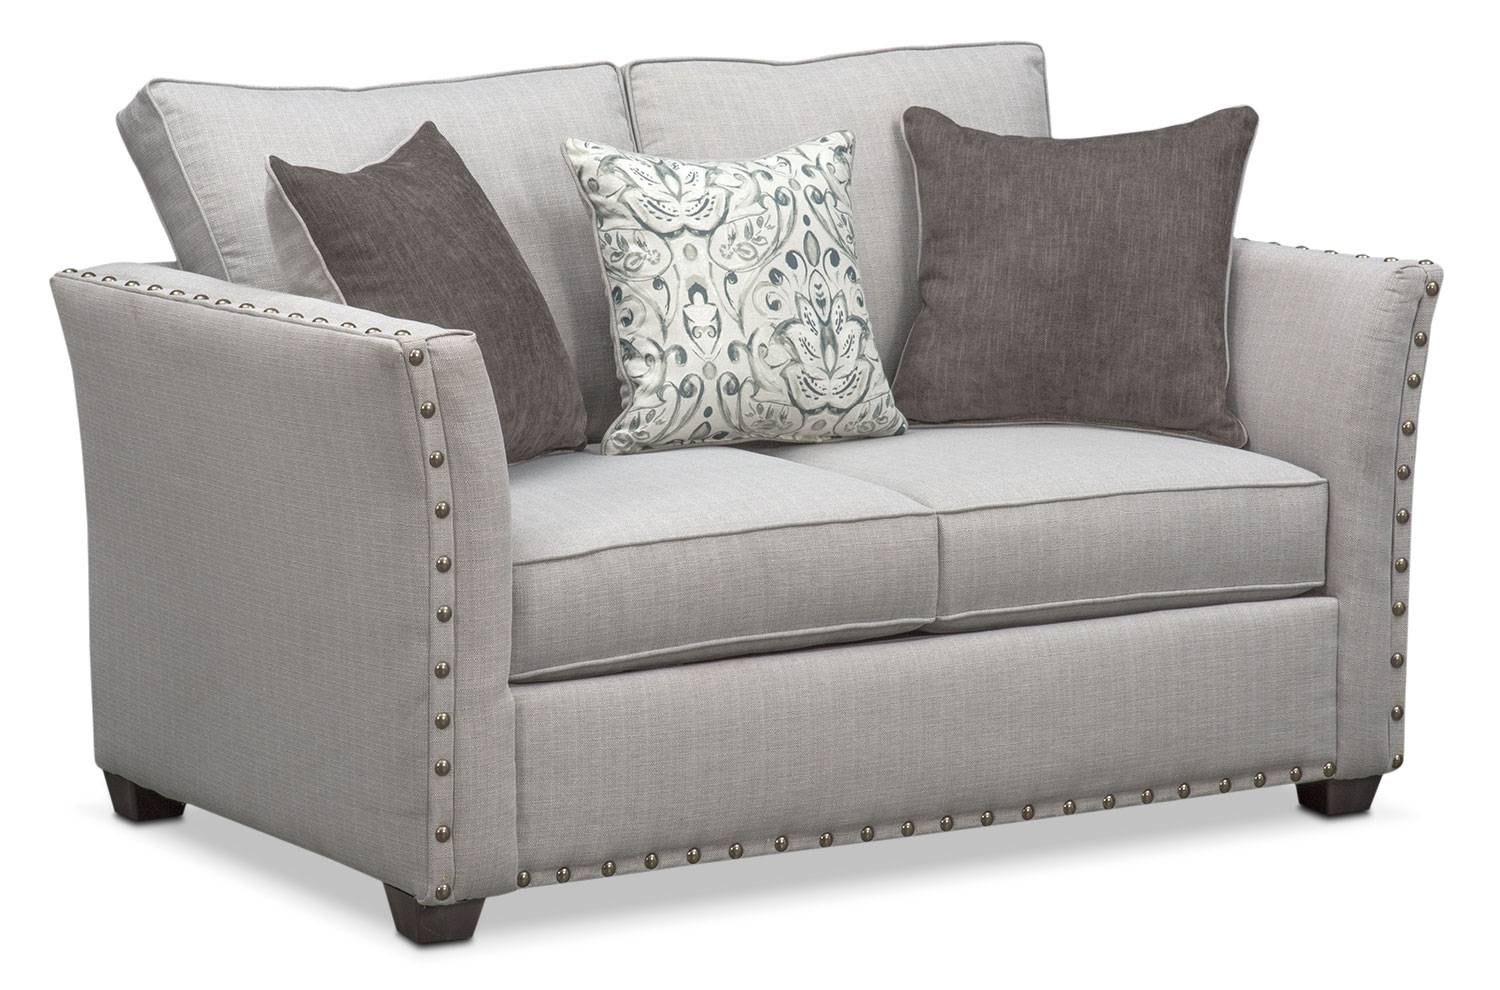 Mckenna Sofa, Loveseat And Accent Chair Set - Pewter | Value City within Sofa and Accent Chair Set (Image 25 of 30)